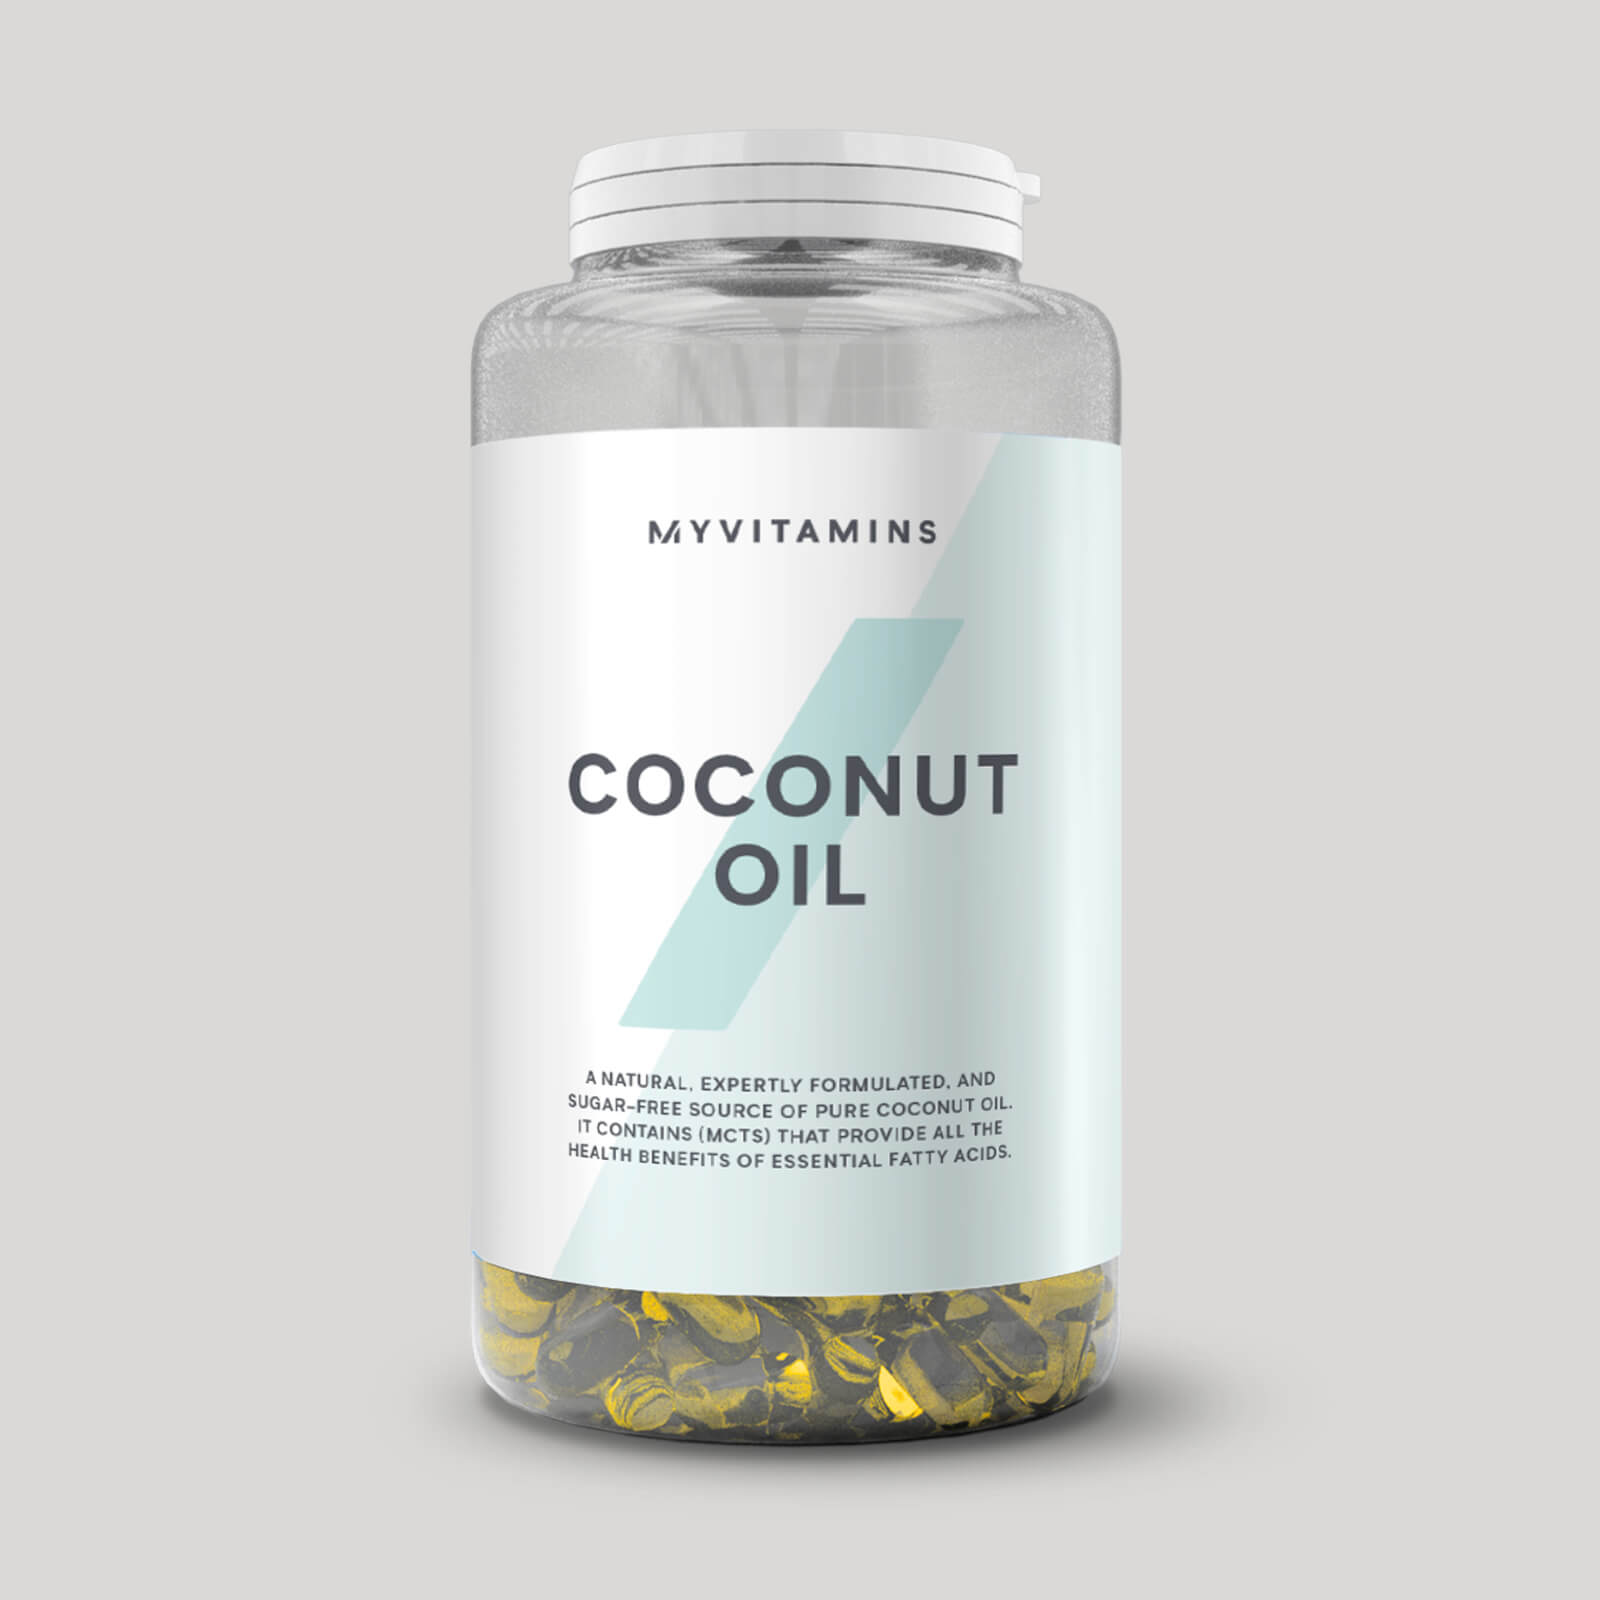 Myprotein Coconut Oil Softgels - 90Softgels